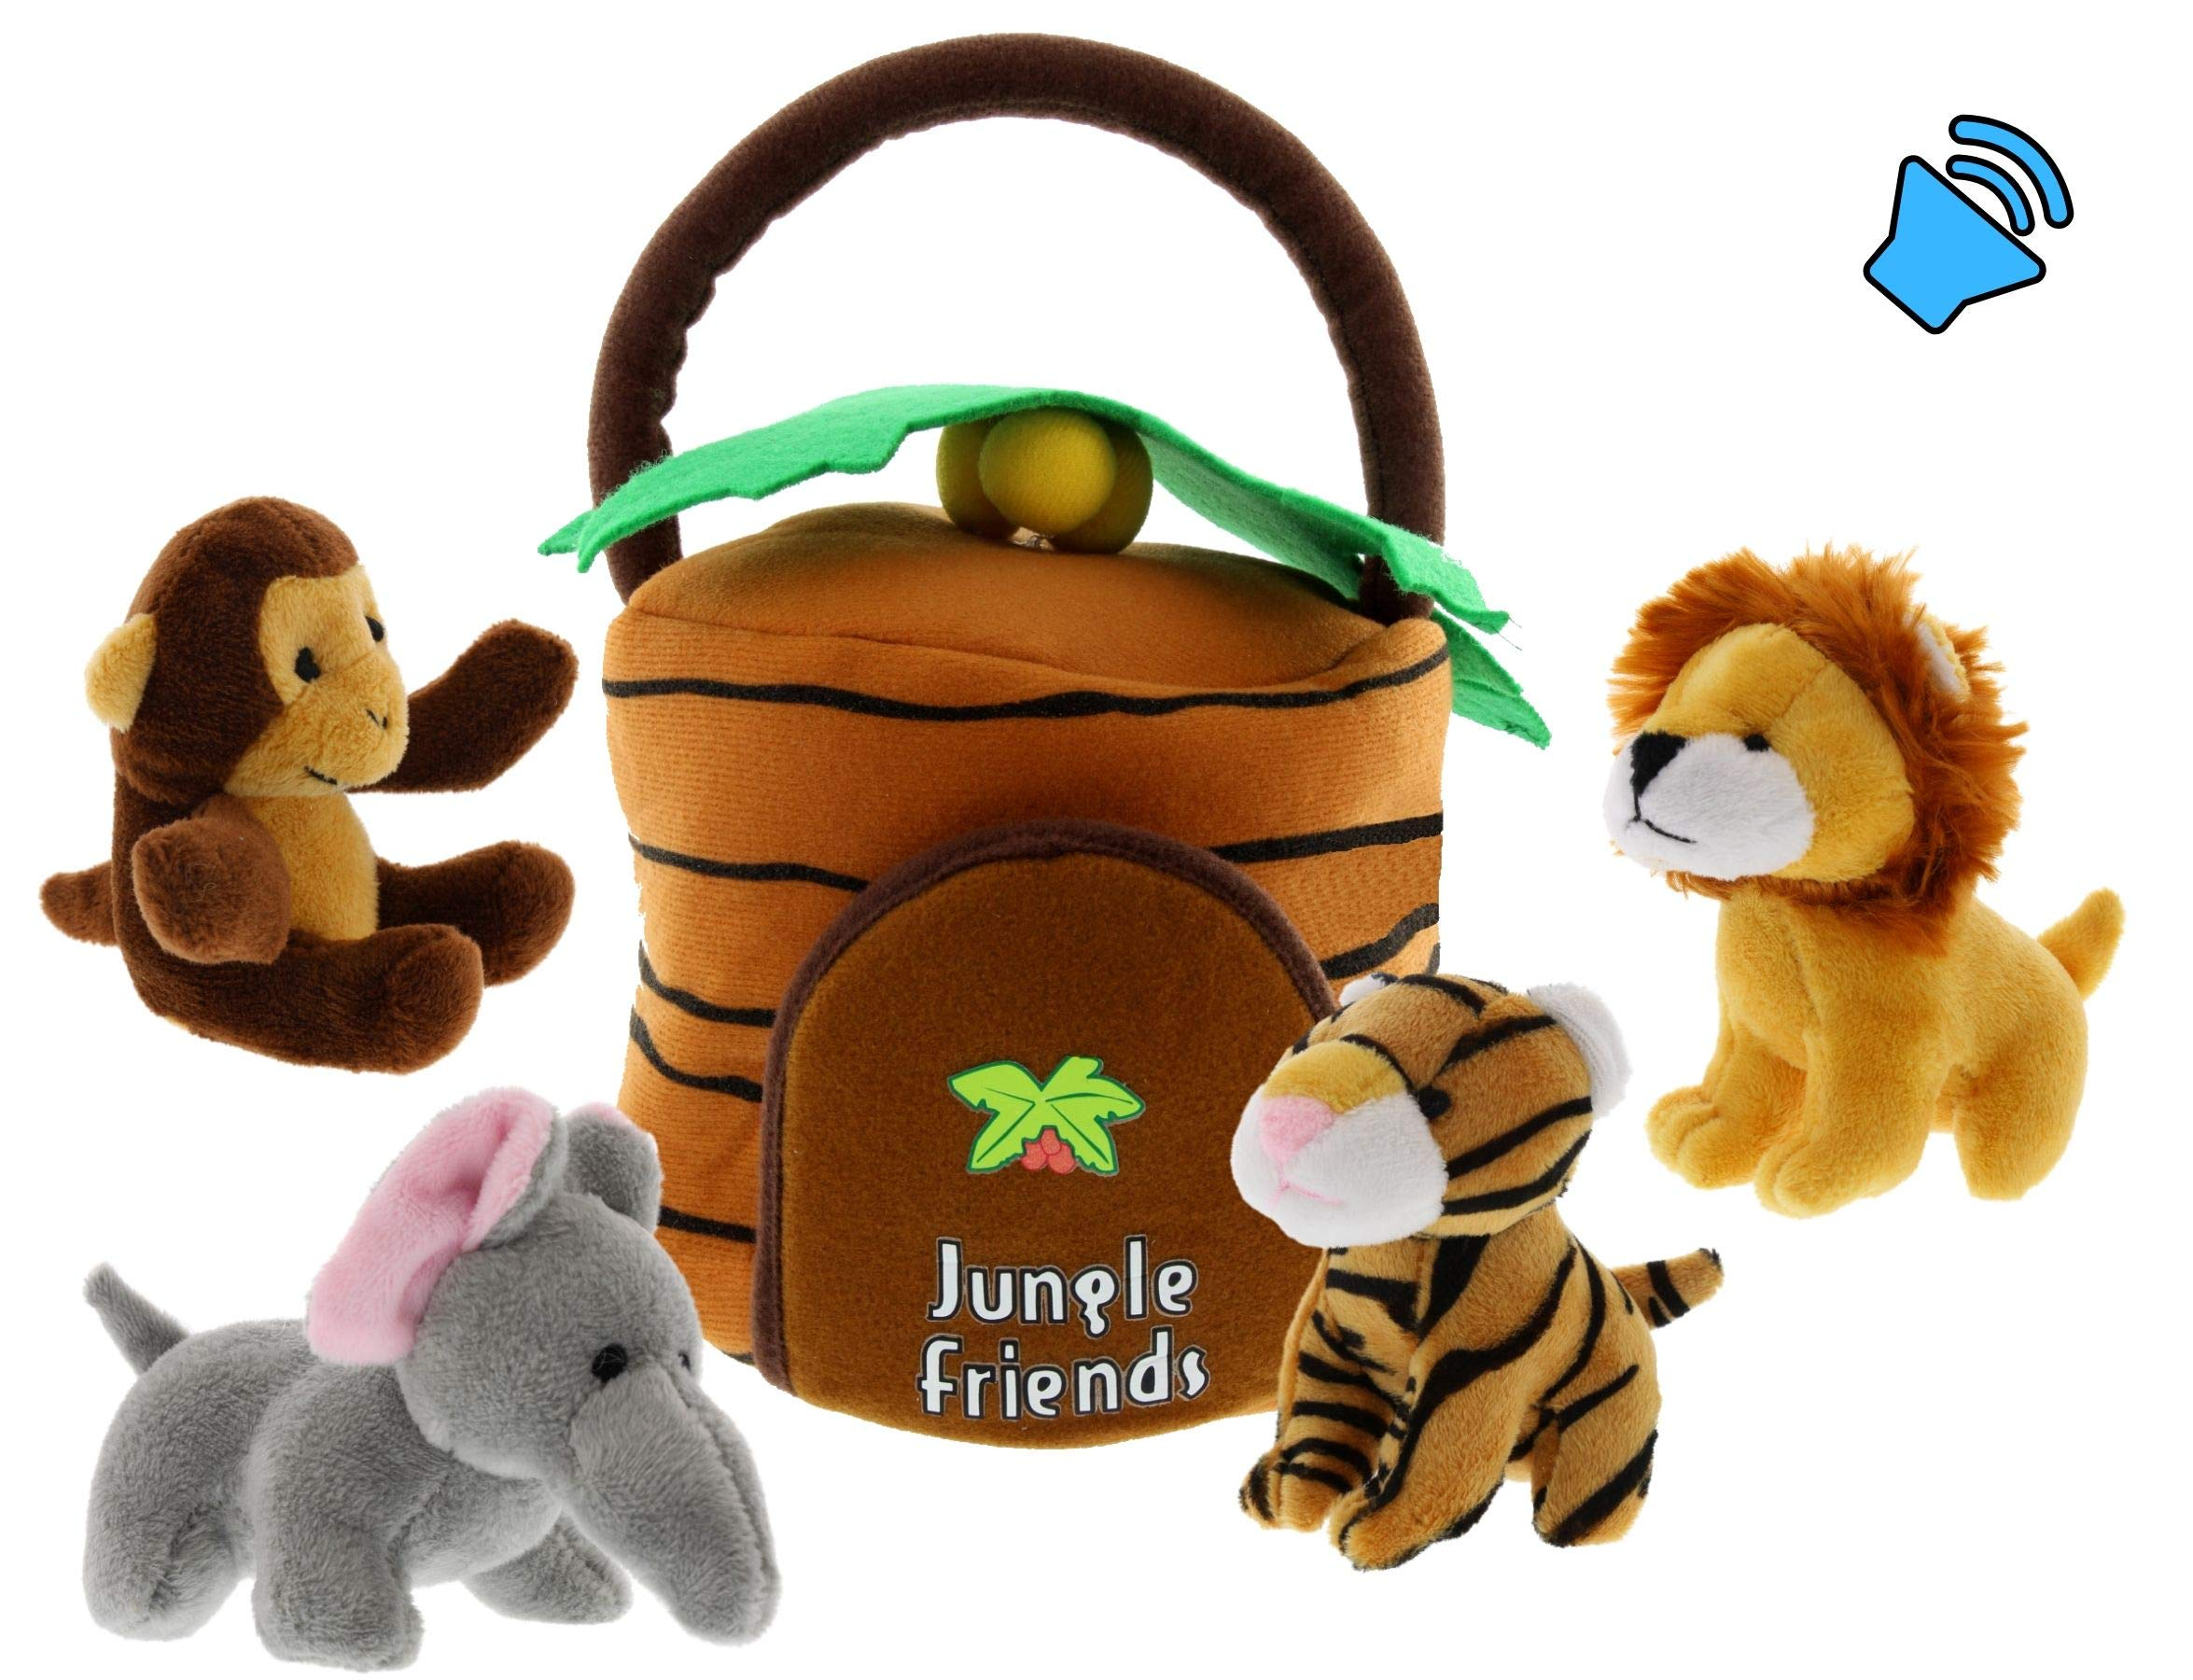 Talking Interactive Plush Jungle Animals Toy Set with Jungle House Carrier for Kids- 5pc- Stuffed Monkey, Lion, Tiger & Elephant- Great for Boys & Girls, Learning Baby toys by Etna by Etna